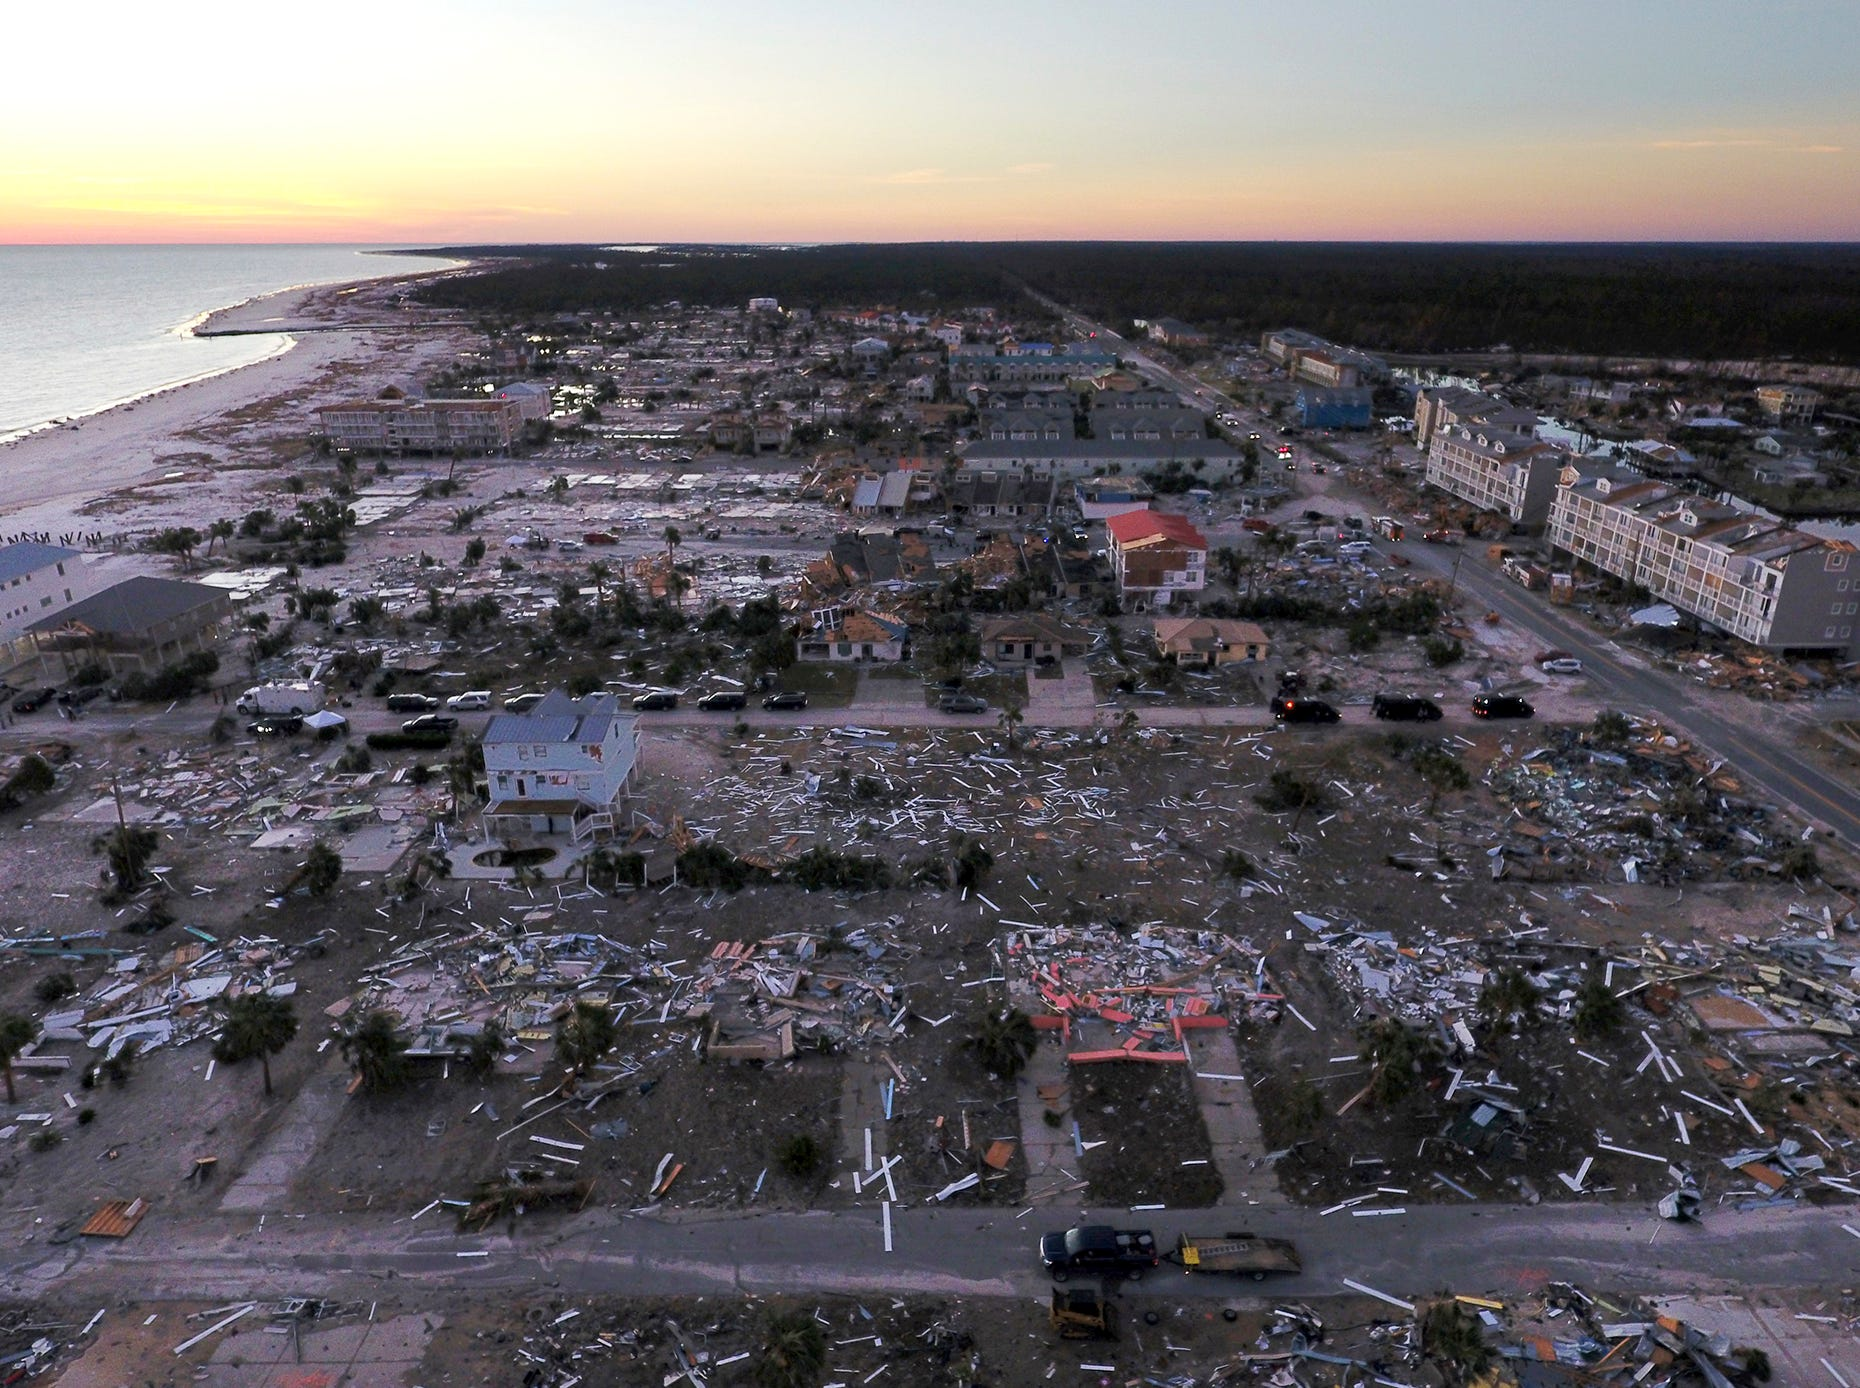 In this Oct. 12, 2018, file photo, damaged homes are seen along the water's edge in the aftermath of hurricane Michael in Mexico Beach, Fla. It was once argued that the trees would help save Florida's Panhandle from the fury of a hurricane, as the acres of forests in the region would provide a natural barrier to savage winds that accompany the deadly storms. It's part of the reason that tighter building codes, mandatory in places such as South Florida, were not put in place for most of this region until just 11 years ago. And it may be a painful lesson for area residents now that Hurricane Michael has ravaged the region.